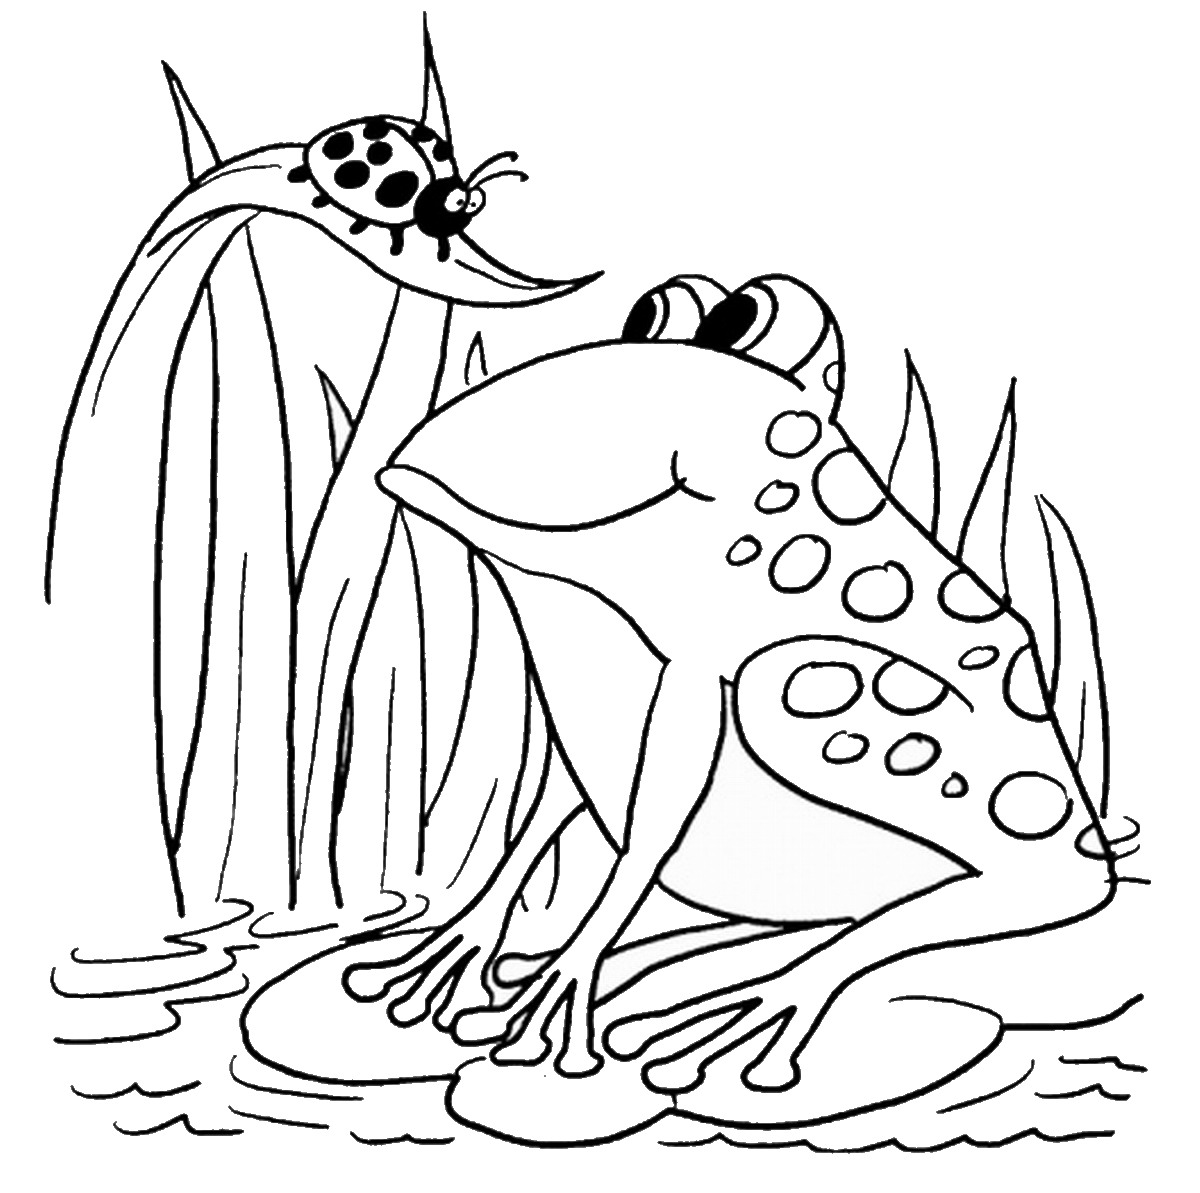 frogs to color for free frog coloring pages frogs for to free color